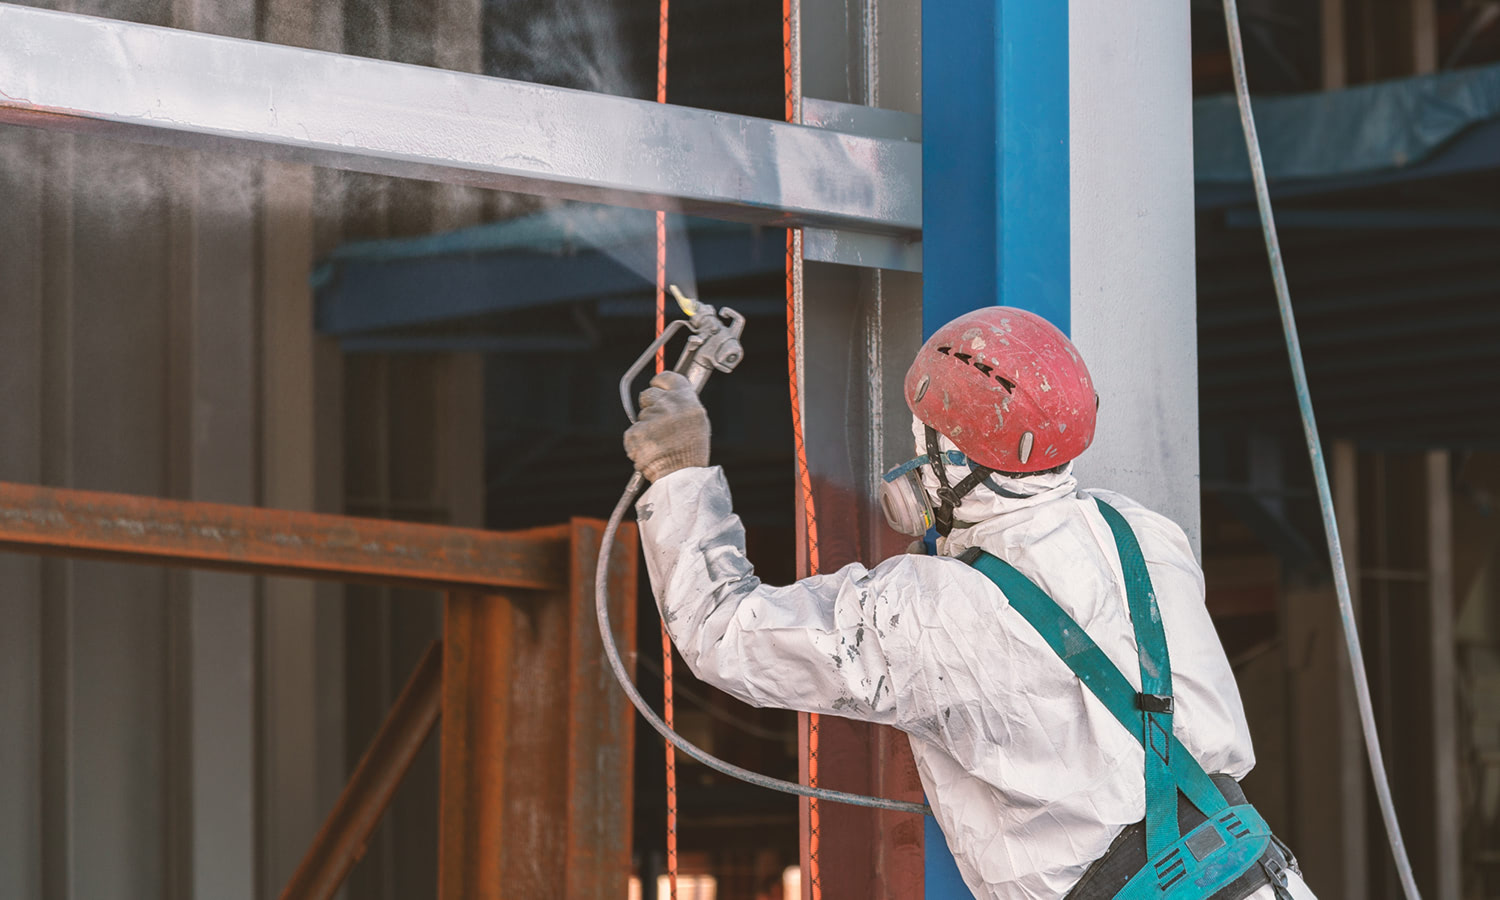 Worker paints a metal frame at construction site